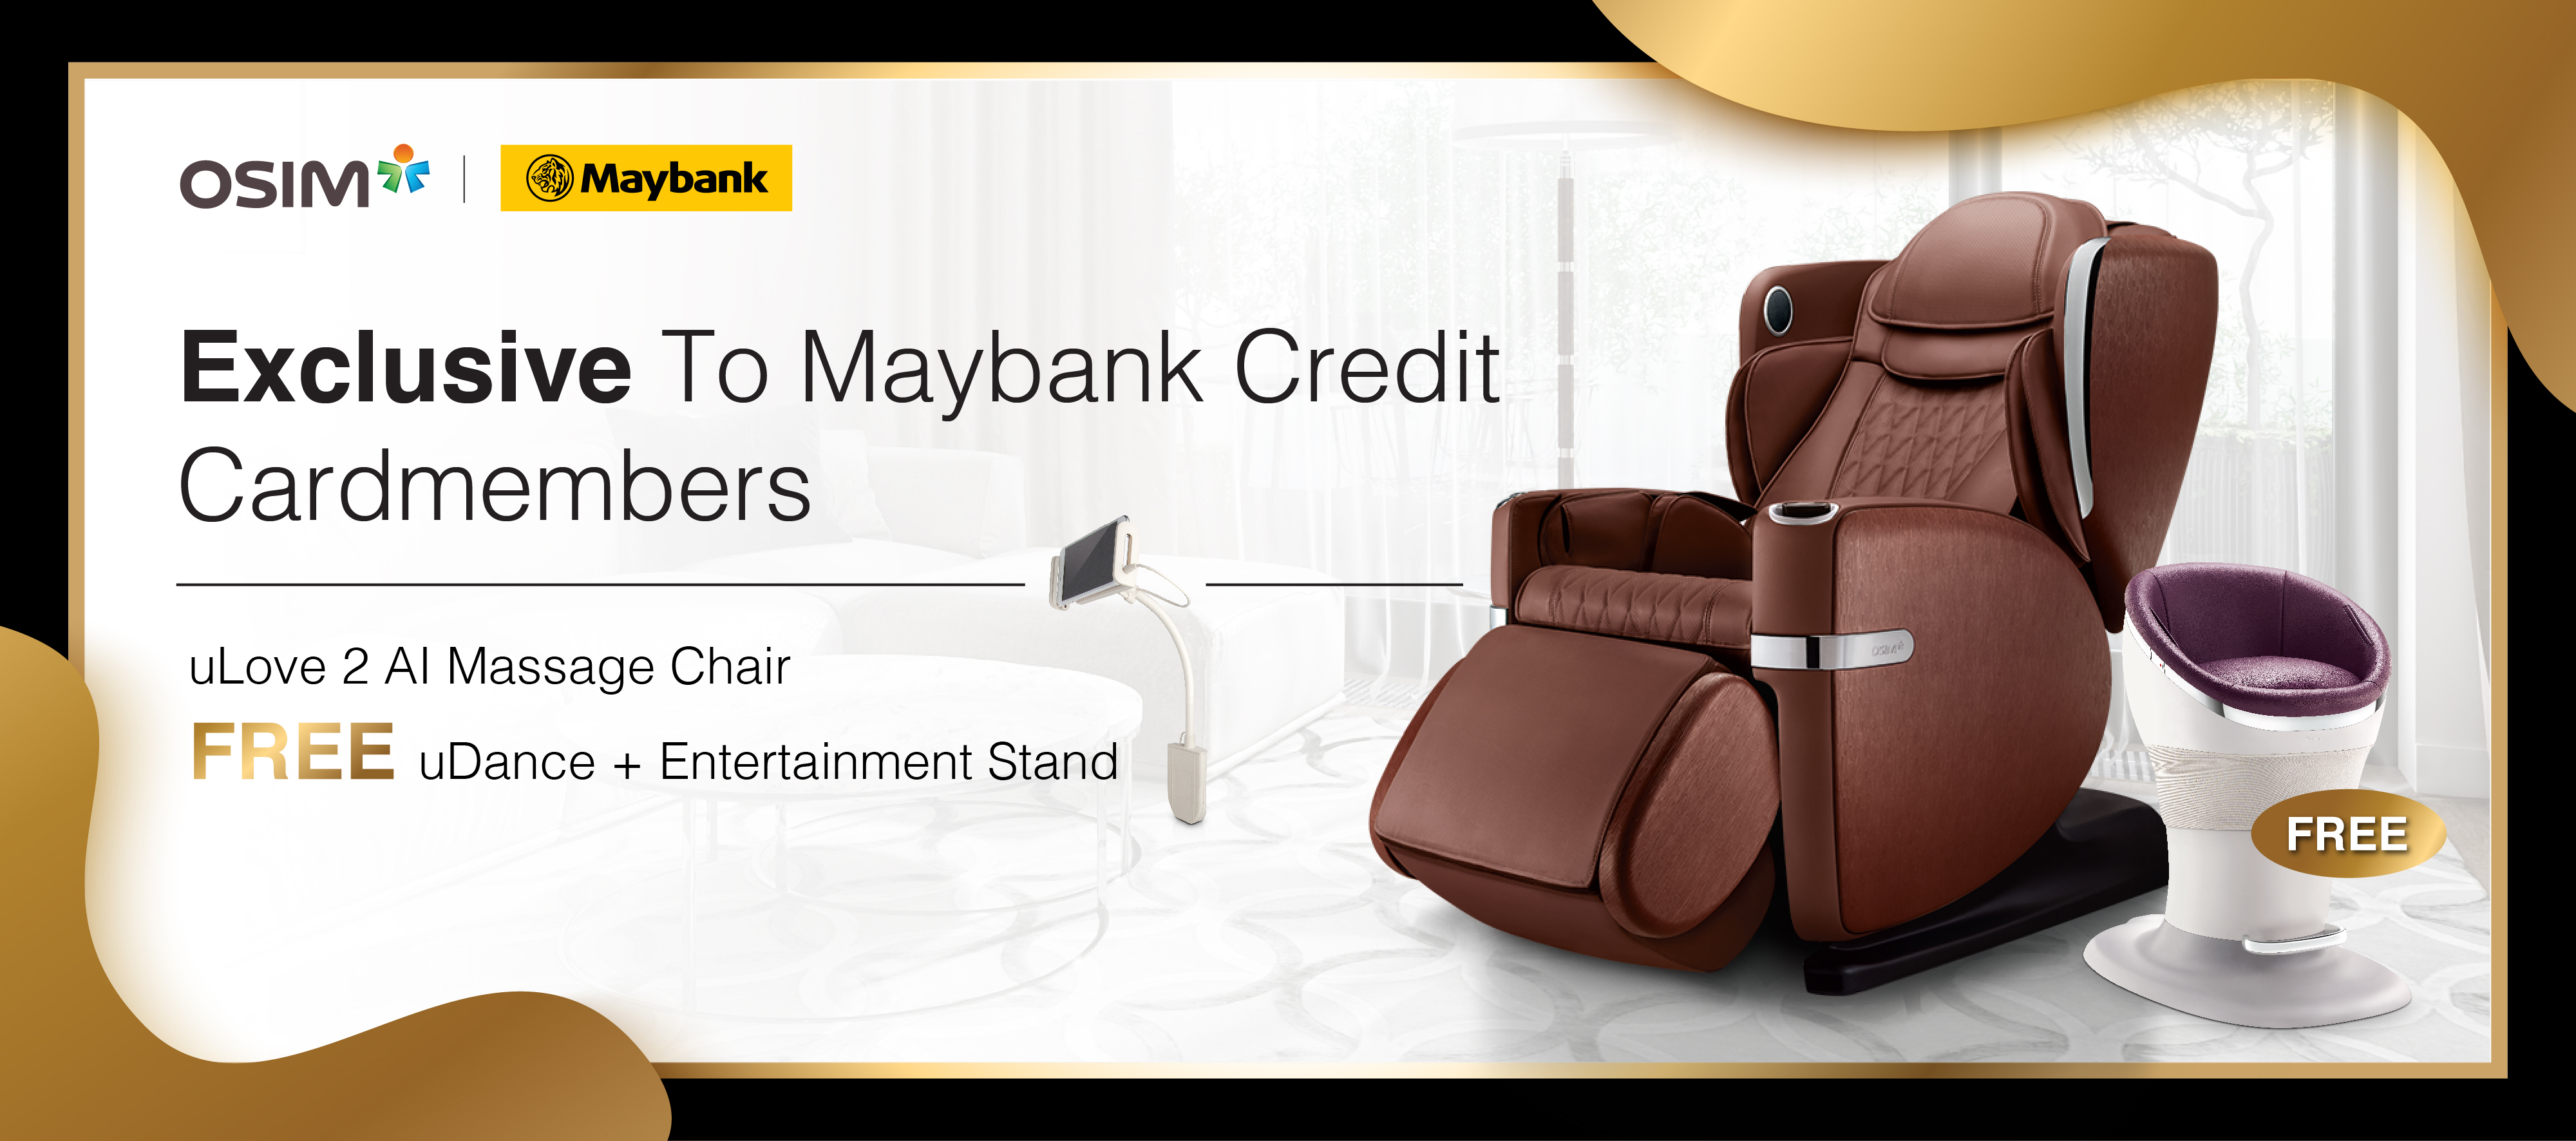 Maybank Exclusive Deal